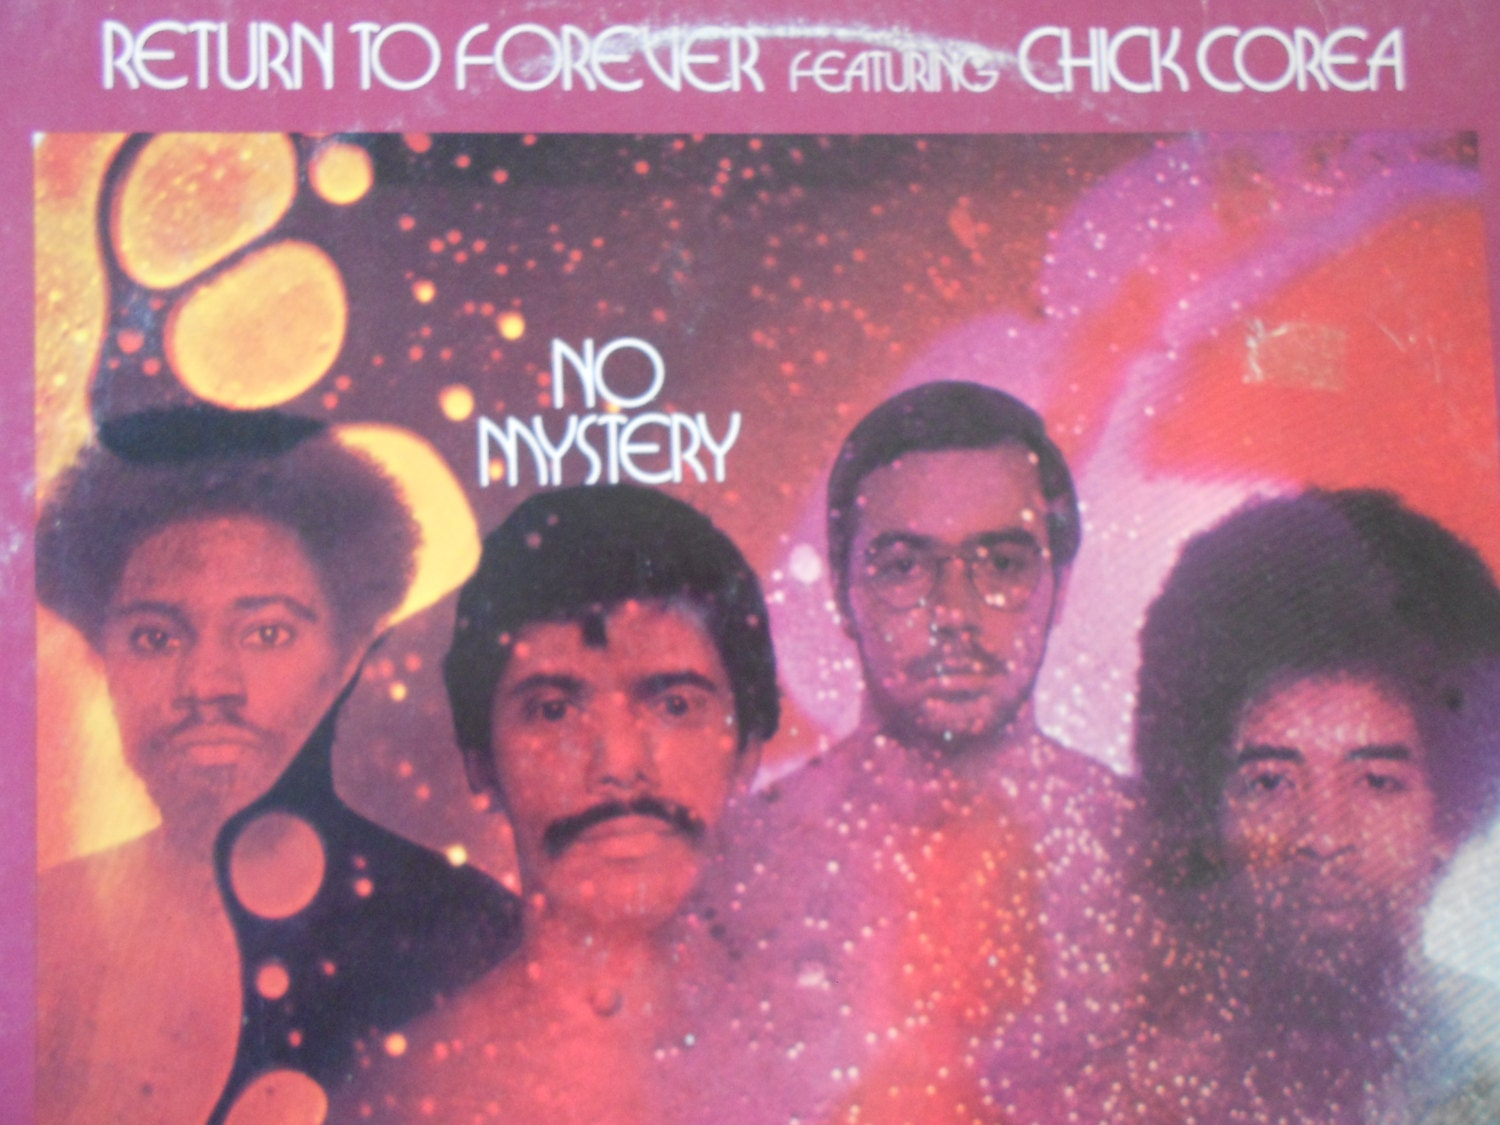 Return To Forever featuring Chick Corea No Mystery vinyl